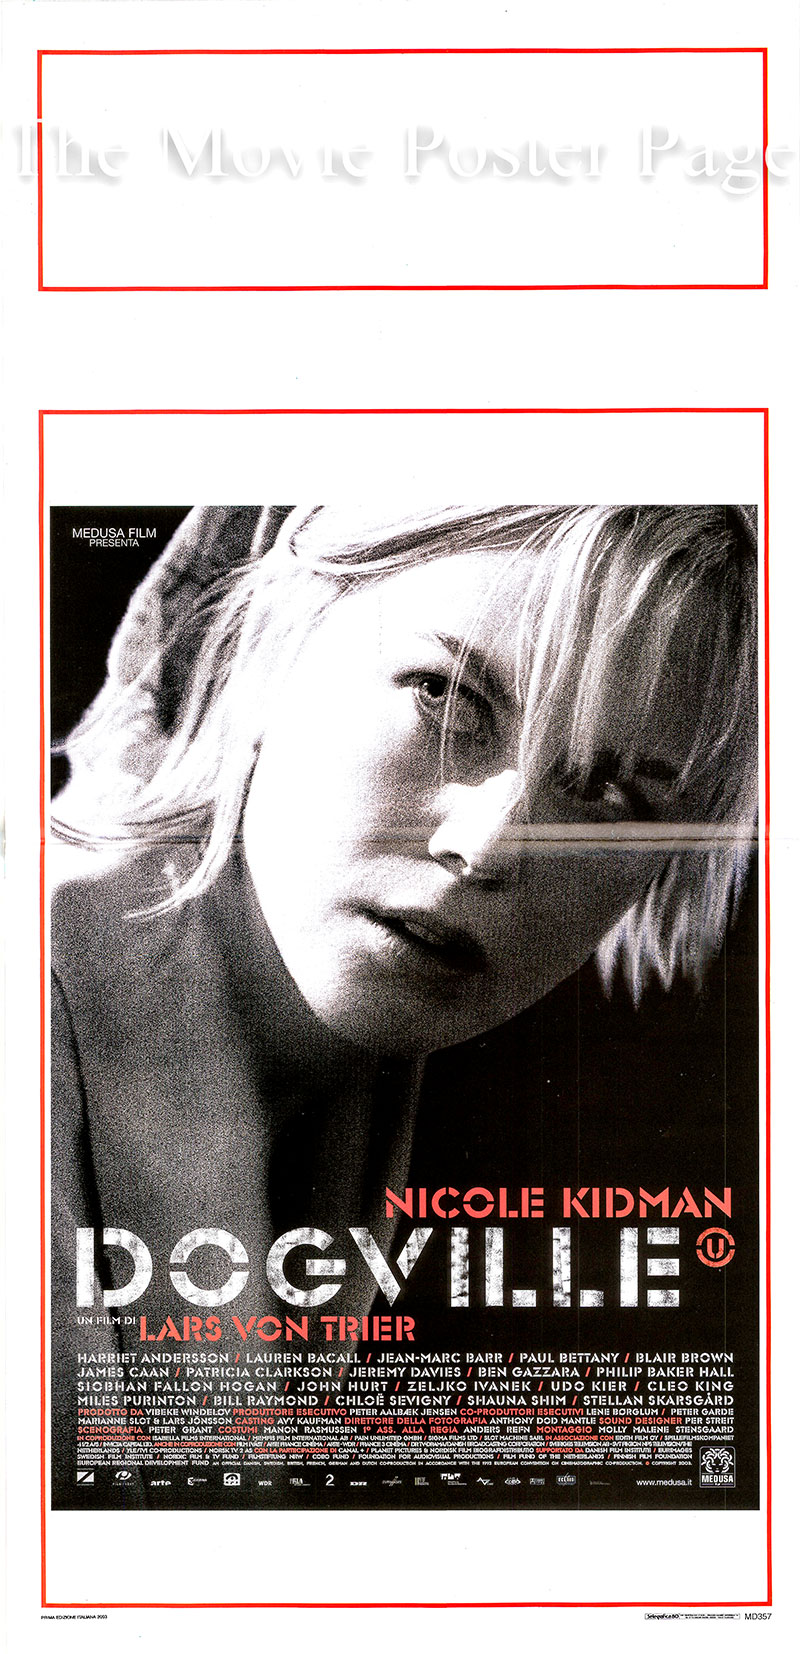 Pictured is an Italian locandina poster for the 2003 Lars Von Trier film Dogville starring Nicole Kidman as Grace Margaret Mulligan.